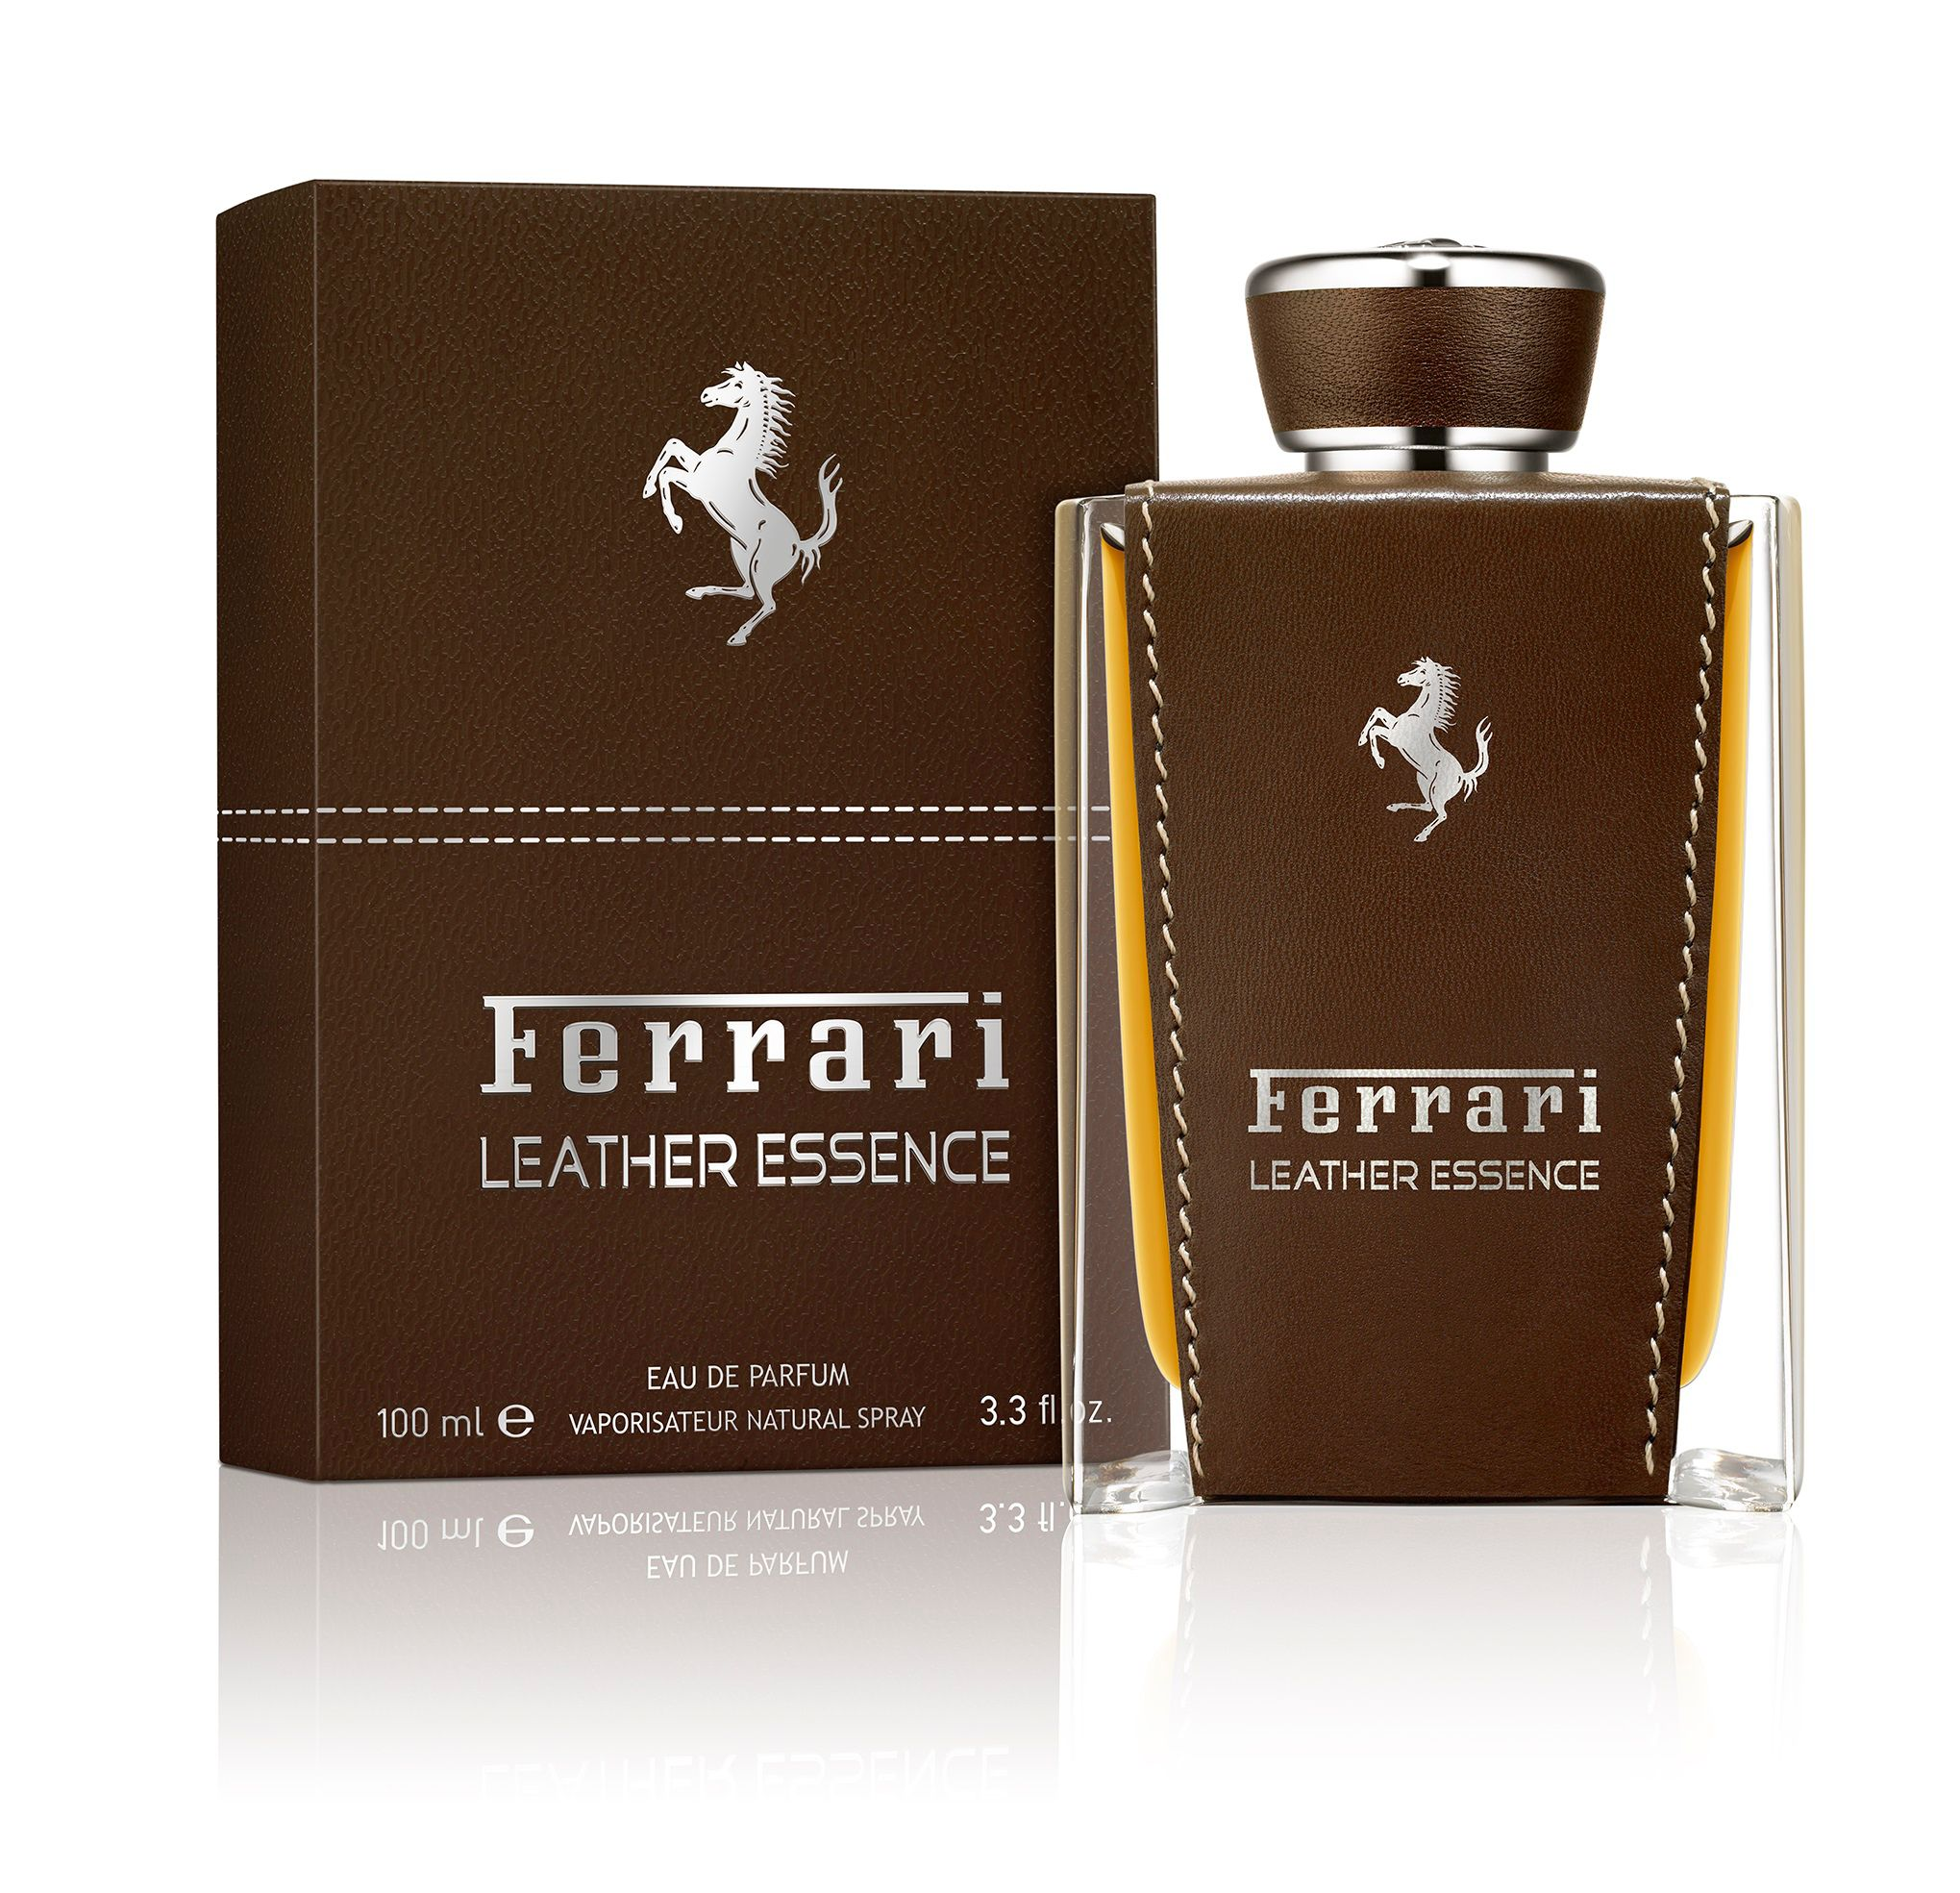 Ferrari Ferrari Leather Essence Eau de Parfum 100ml